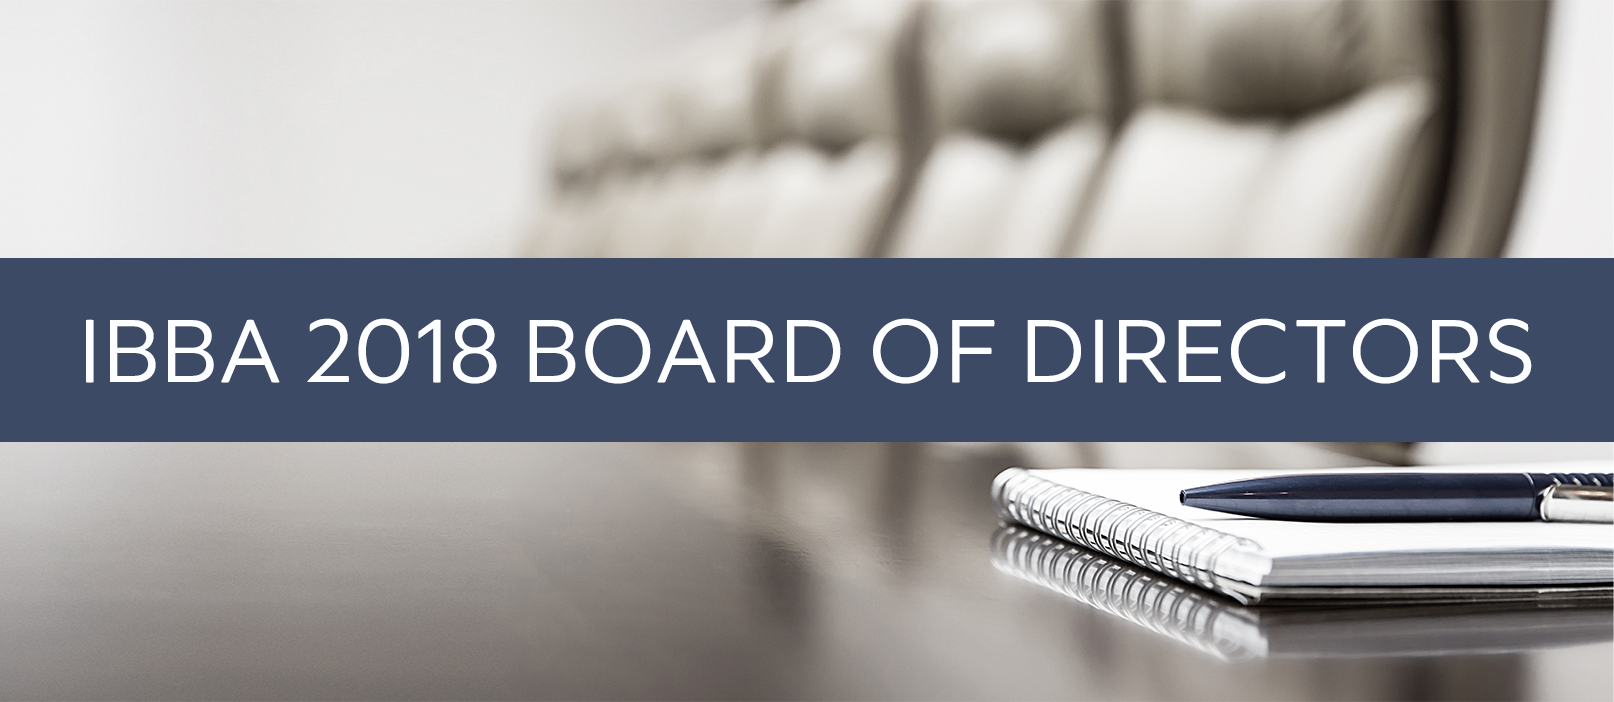 2018 ibba board of directors results